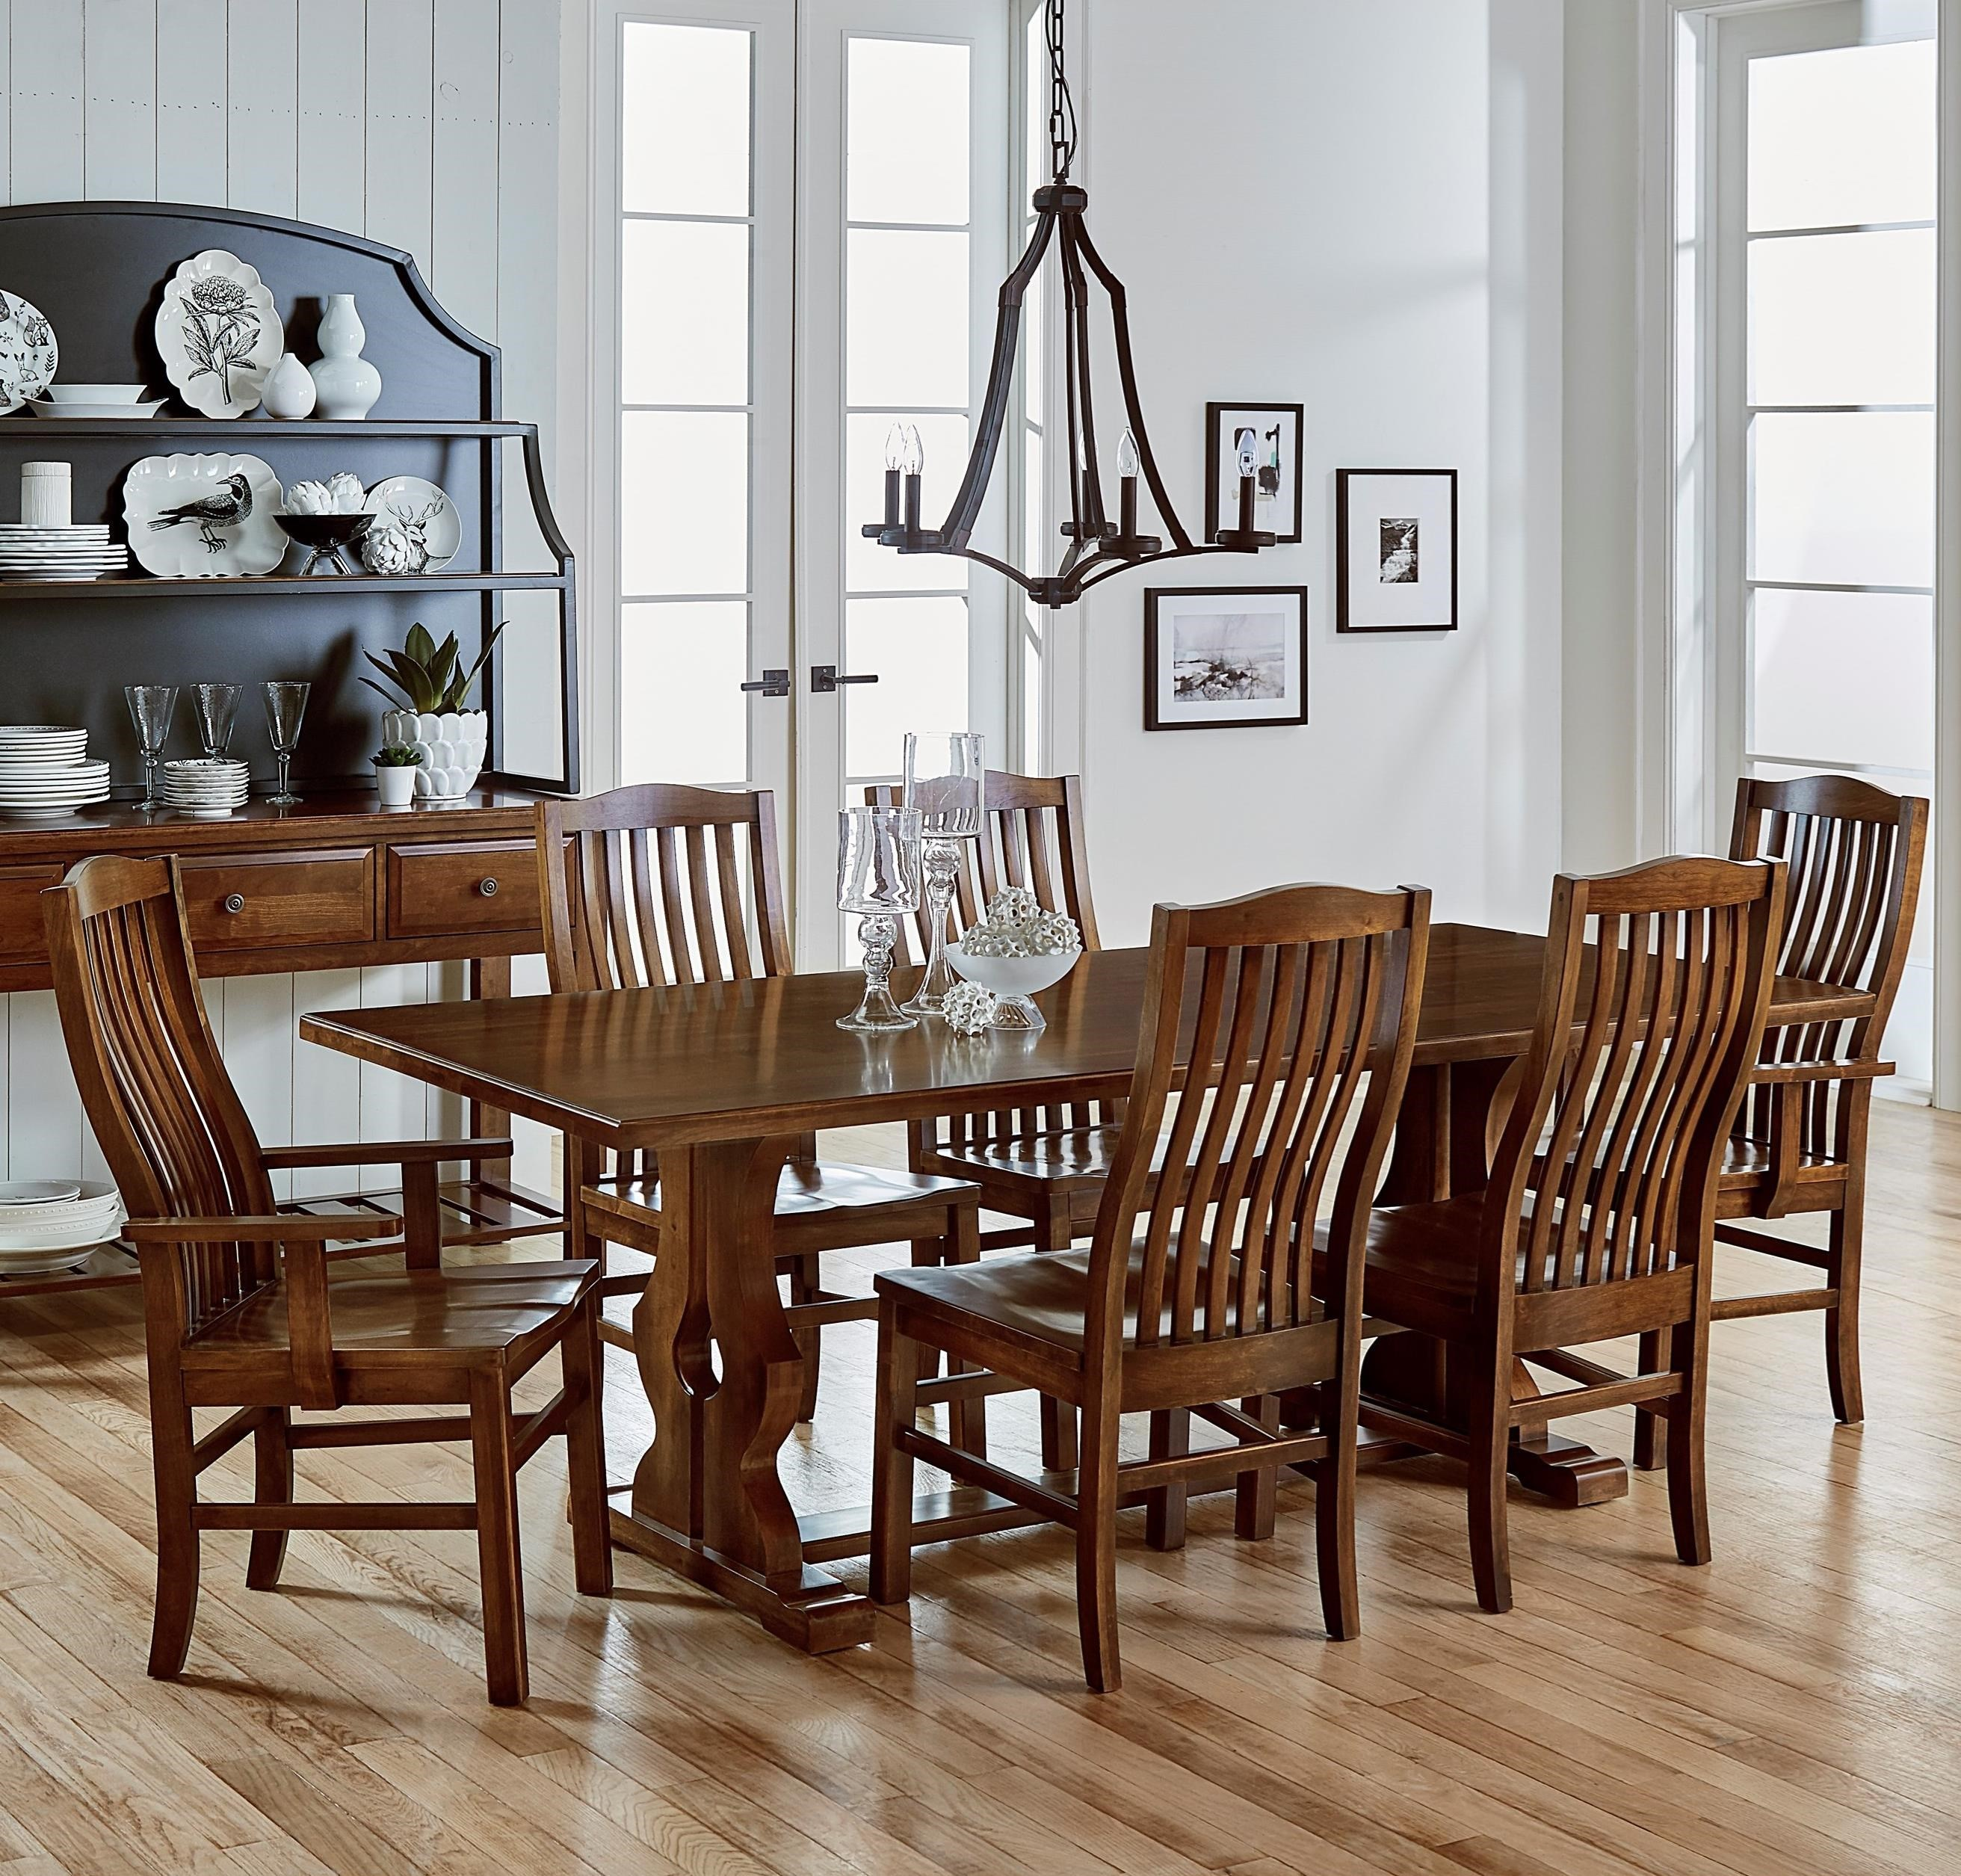 Artisan U0026 Post Simply Dining 7 Piece Solid Cherry Family Dinner Table Set    Gill Brothers Furniture   Dining 7 (or More) Piece Sets